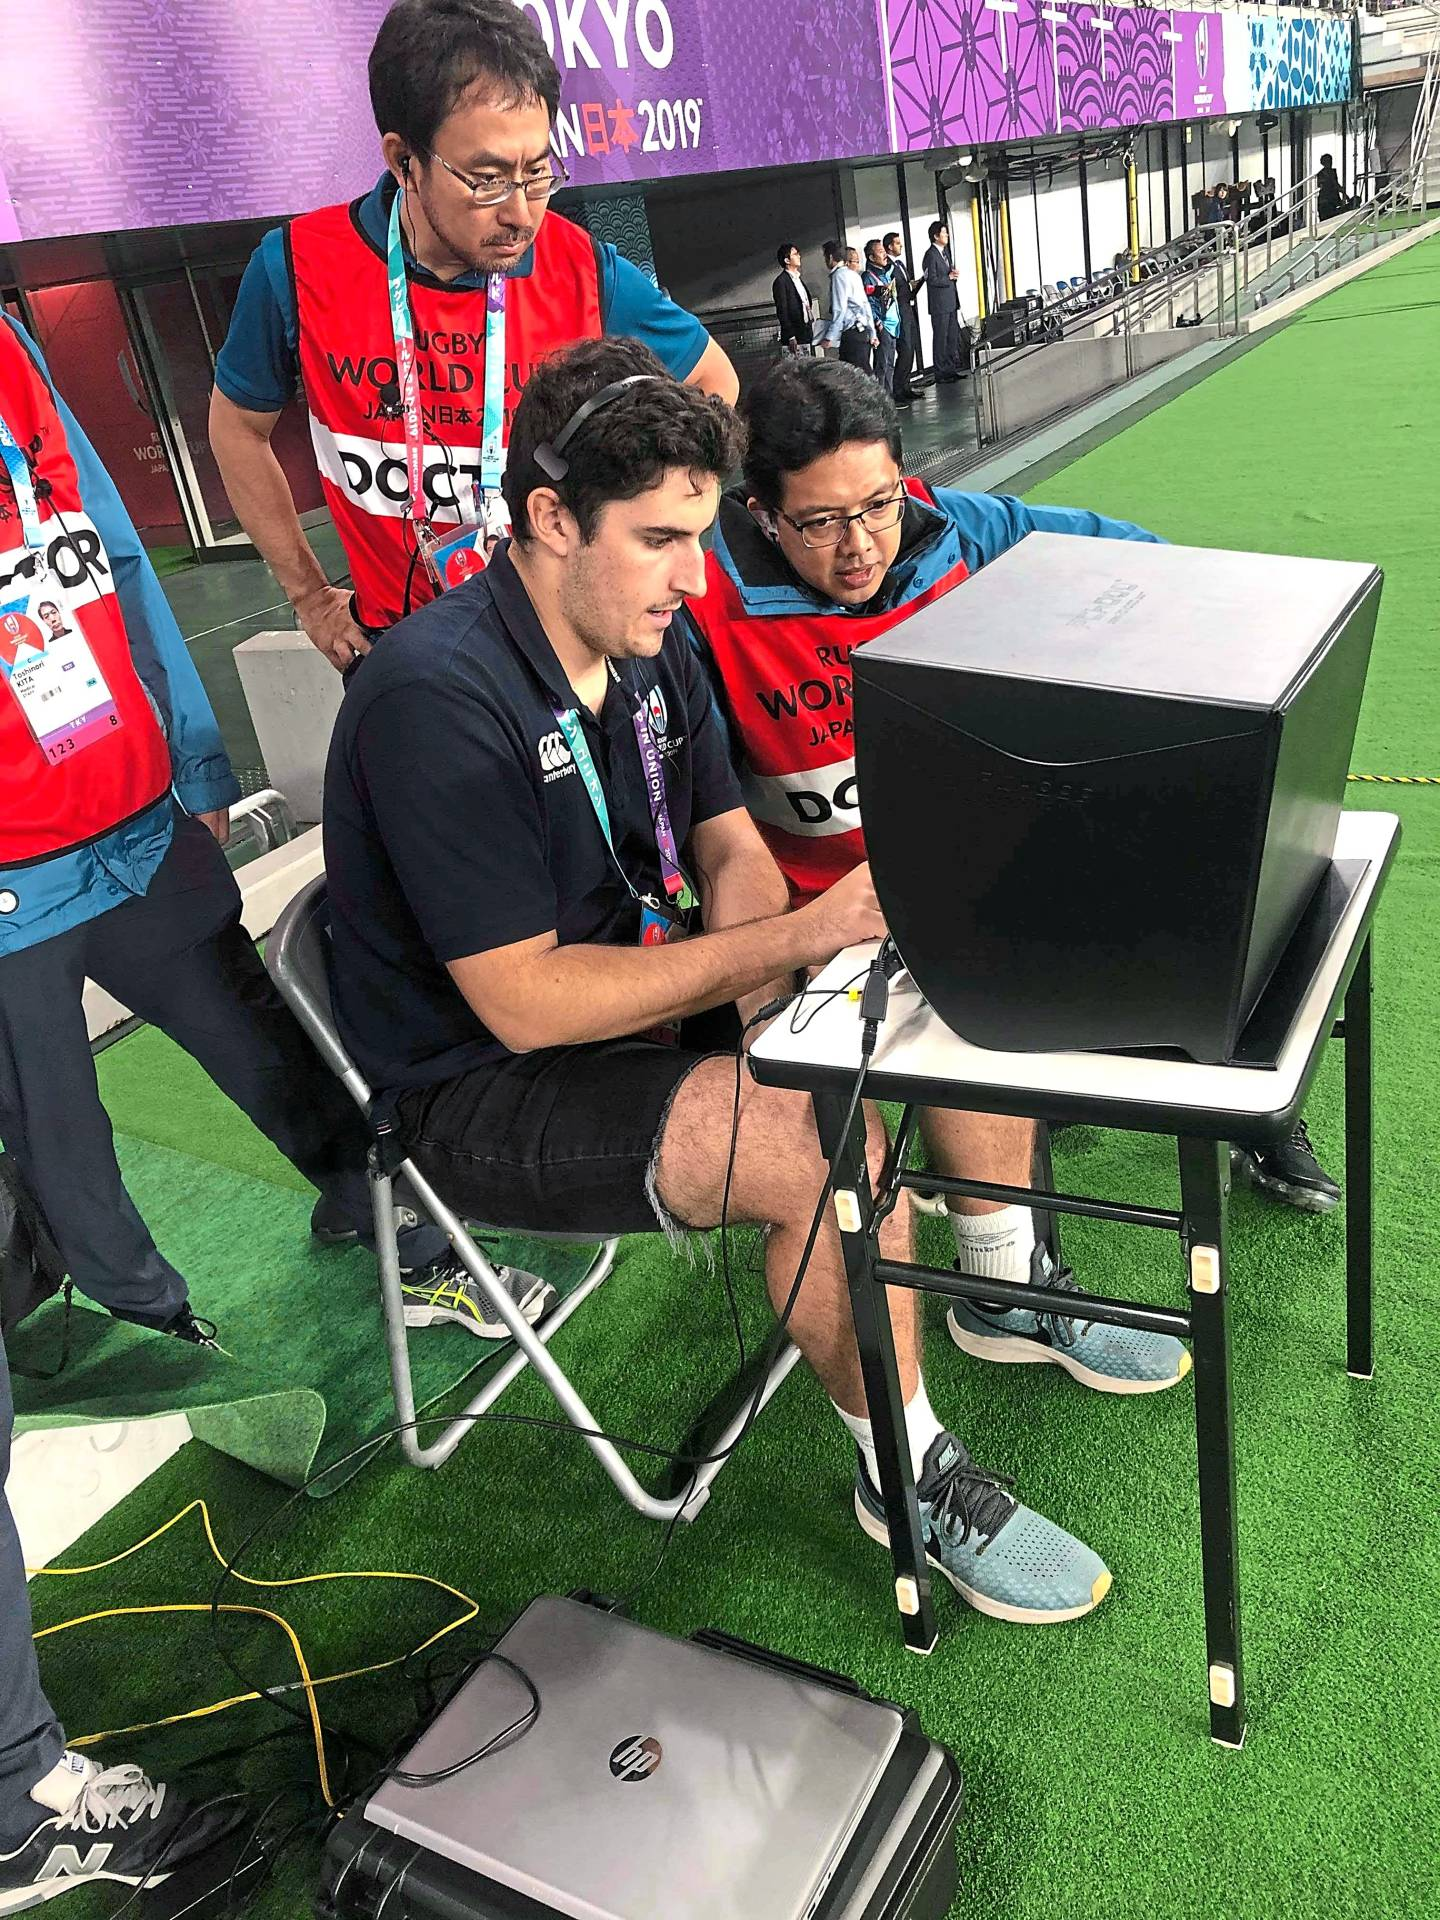 Dr Azril (right) reviewing head impact clips on video replay with his medical team members during halftime of the quarterfinals between Japan and South Africa.